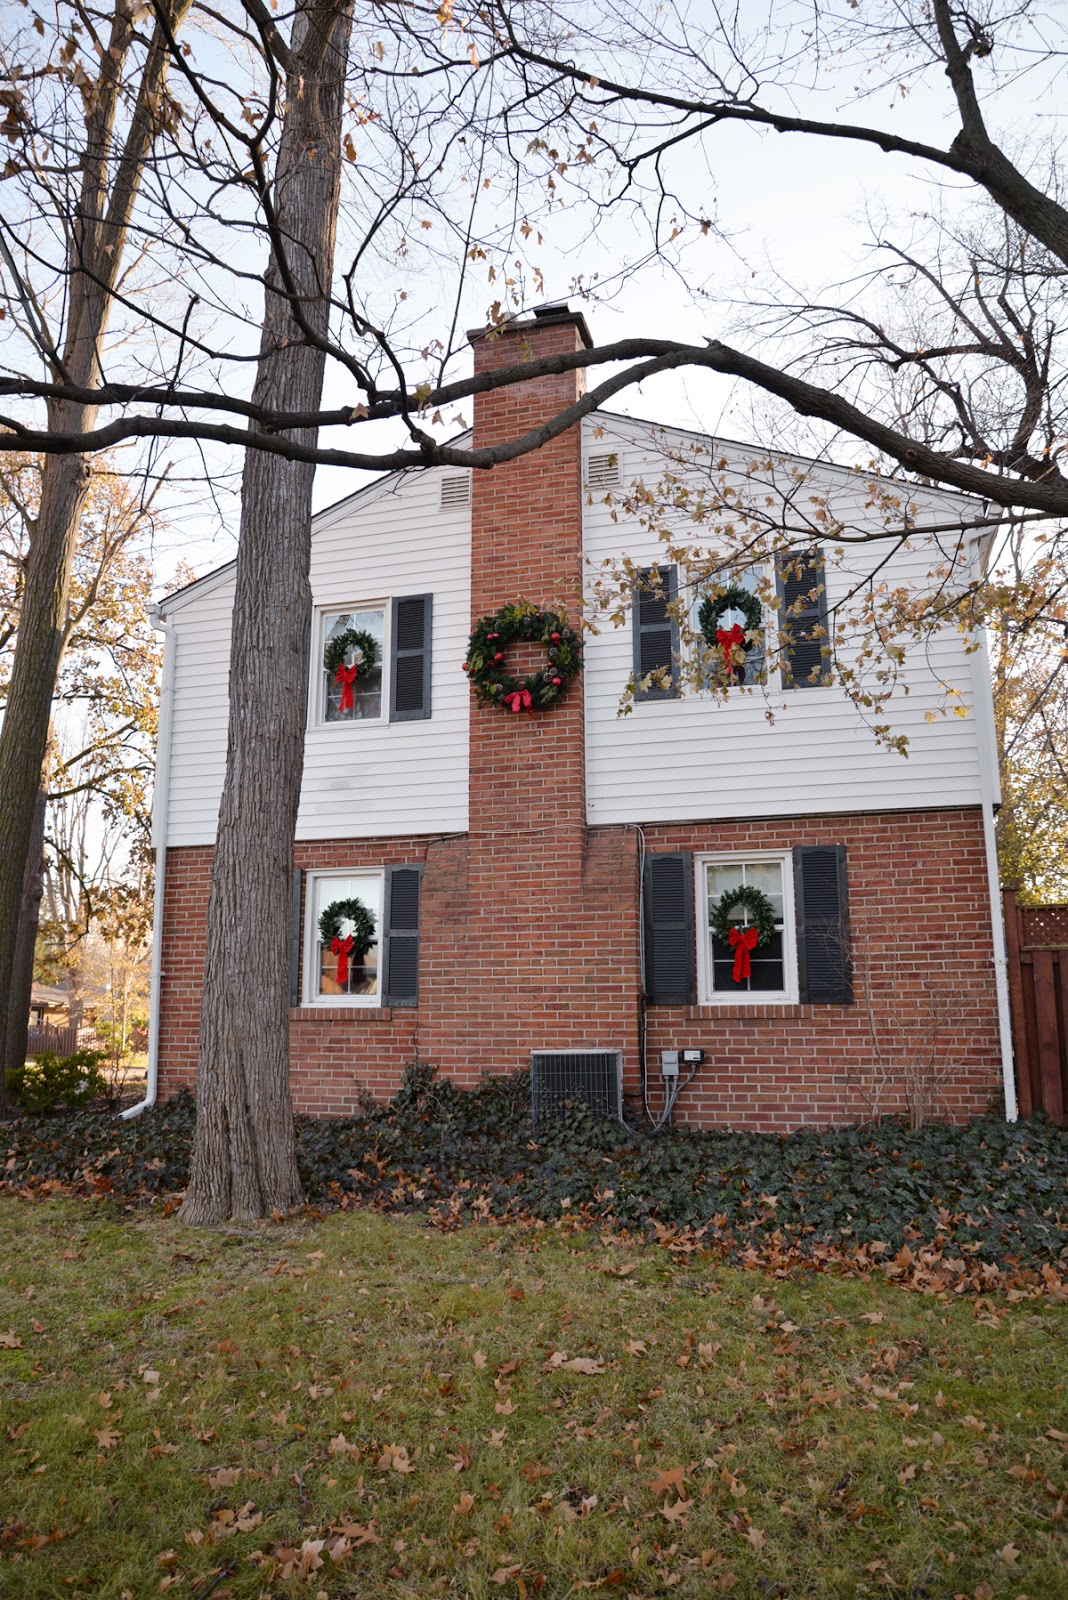 white house black shutters christmas wreaths, wreath on chimney